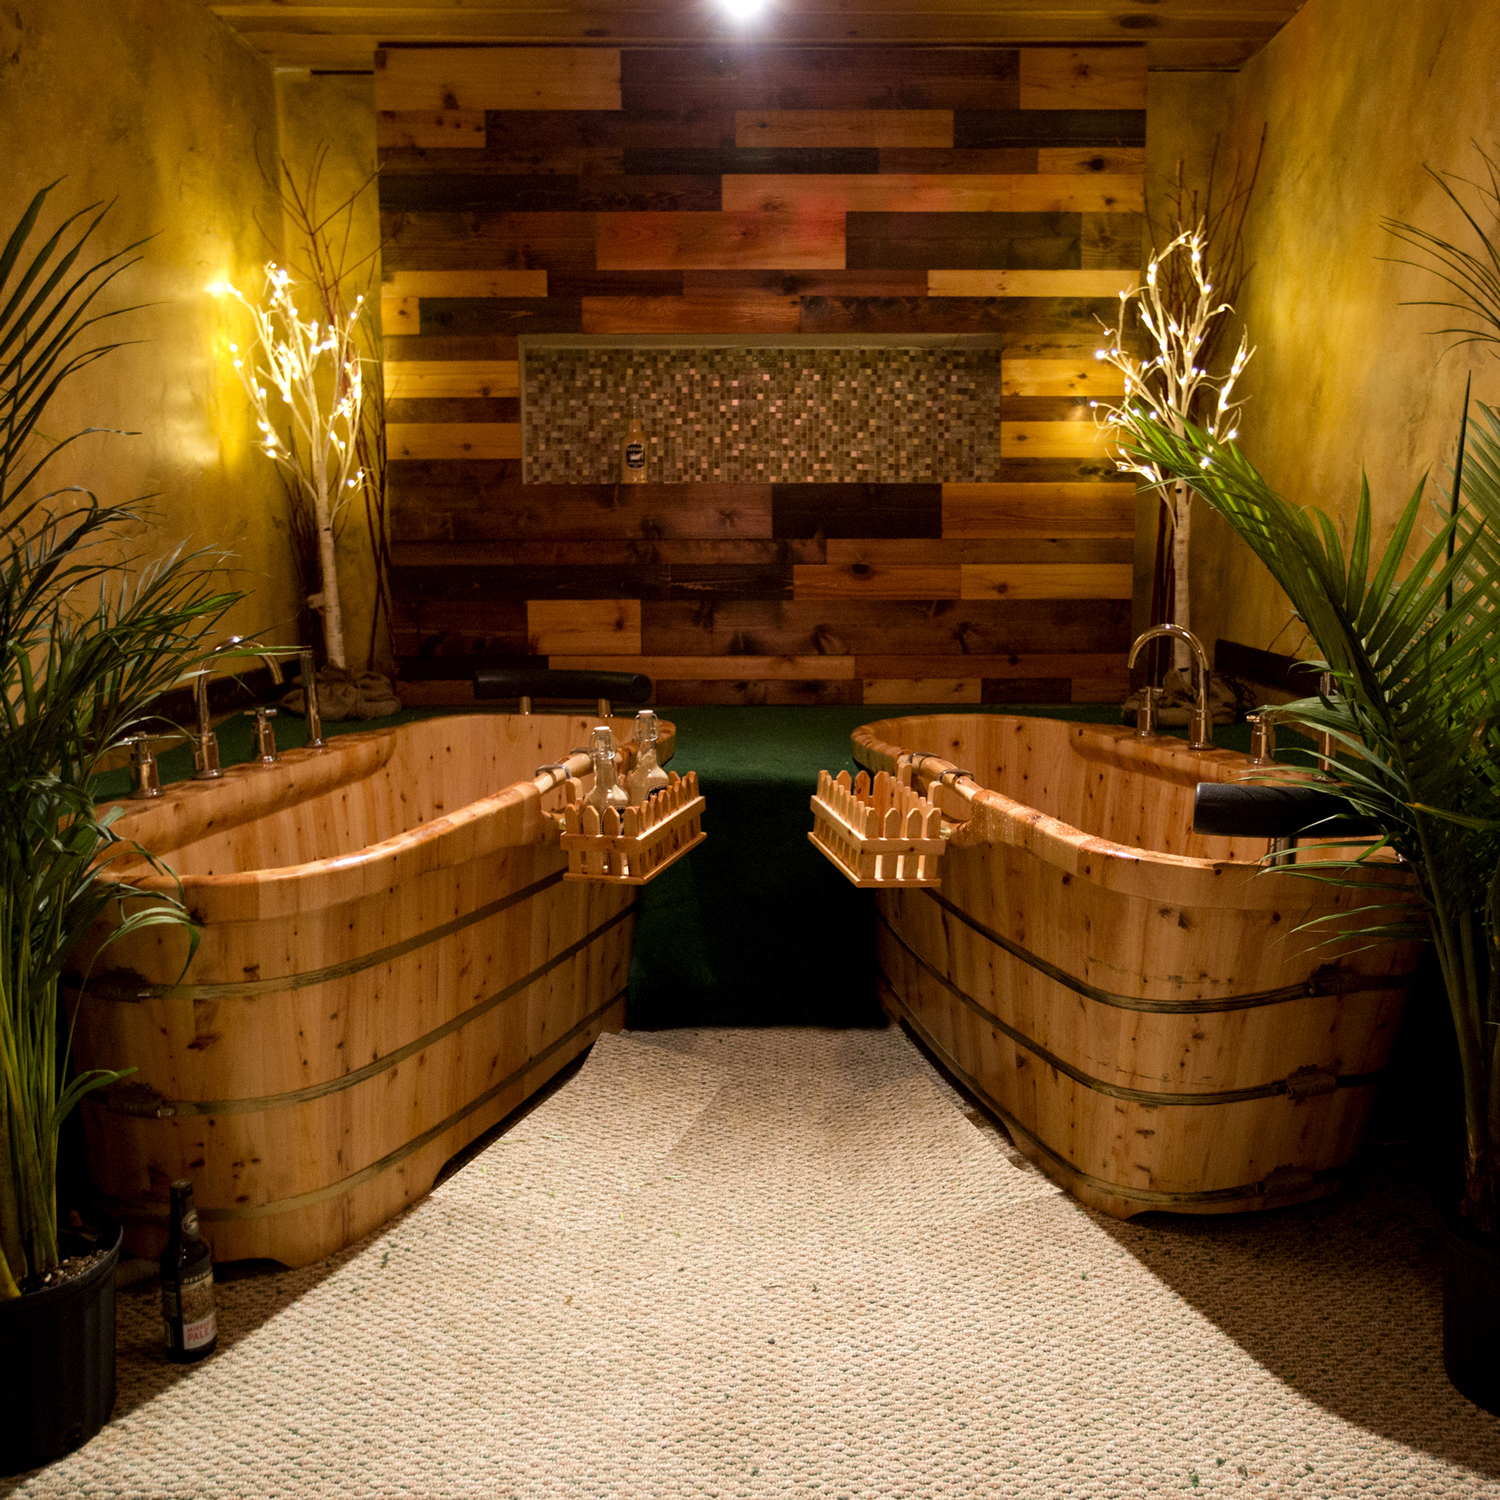 America Finally Gets the Beer Spa It Deserves